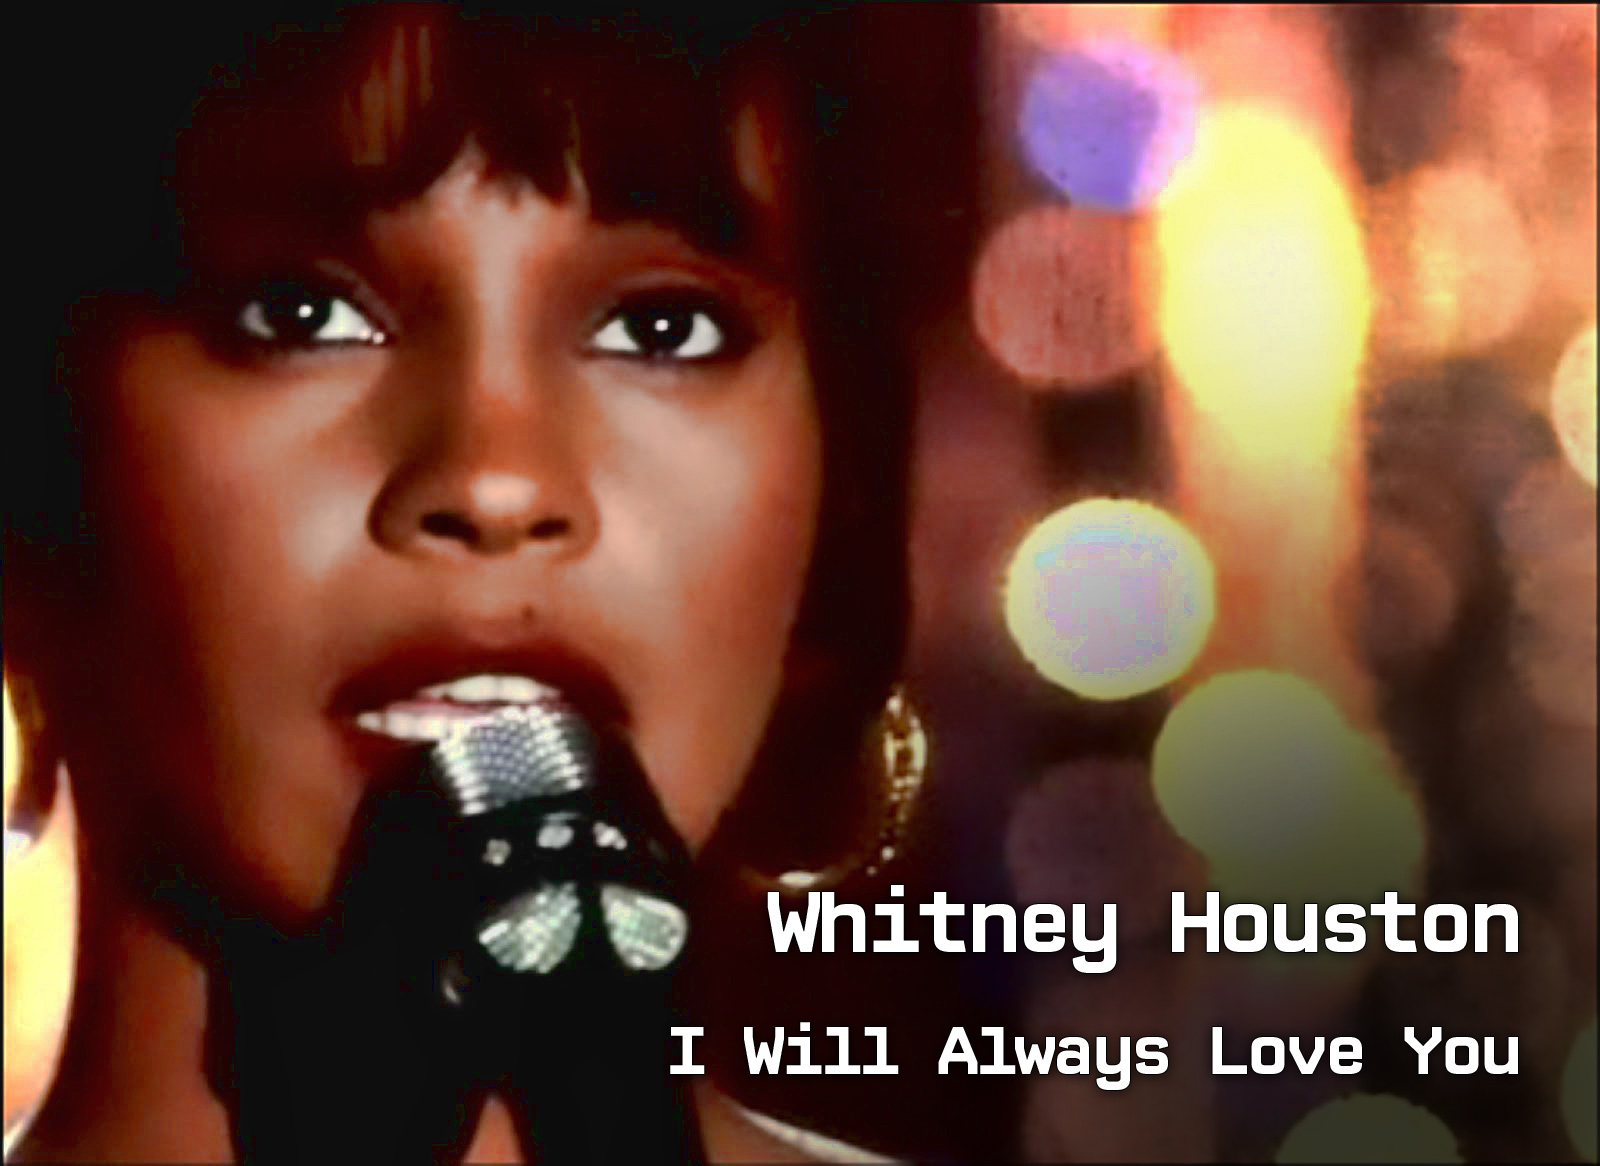 Weekly song Whitney Houston I will always love you - DJ Eddie